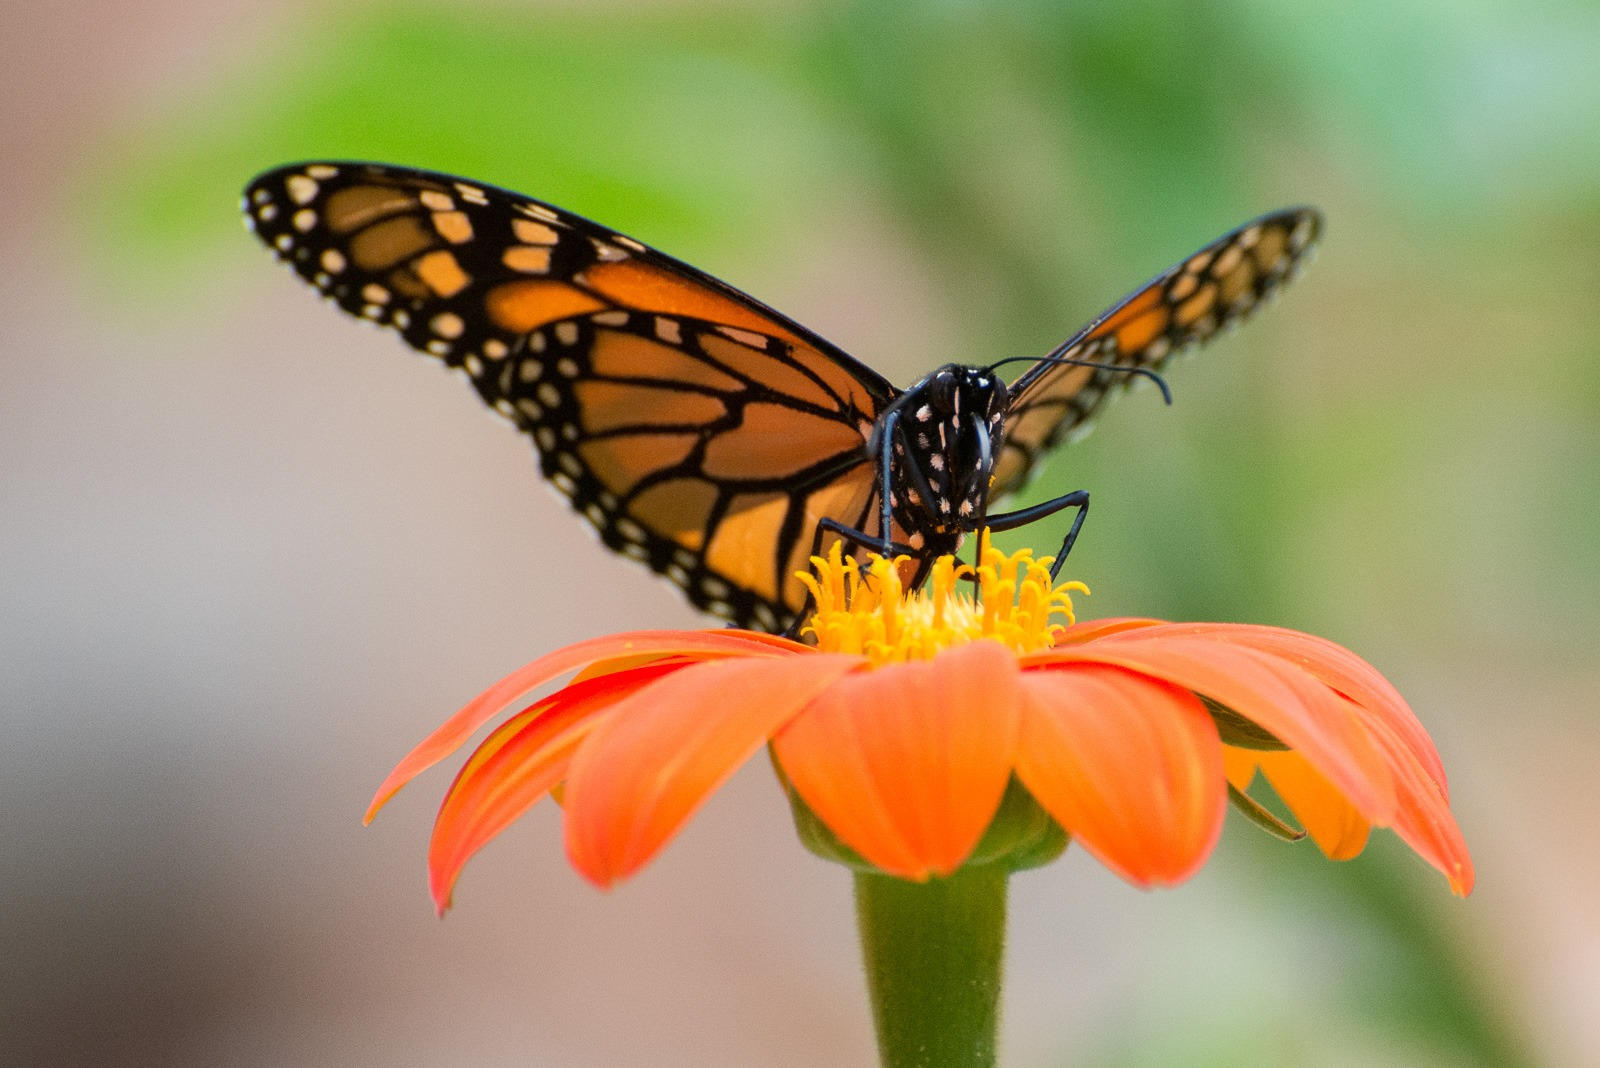 Danaus plexippus 'monarch butterfly' on orange and yellow flower